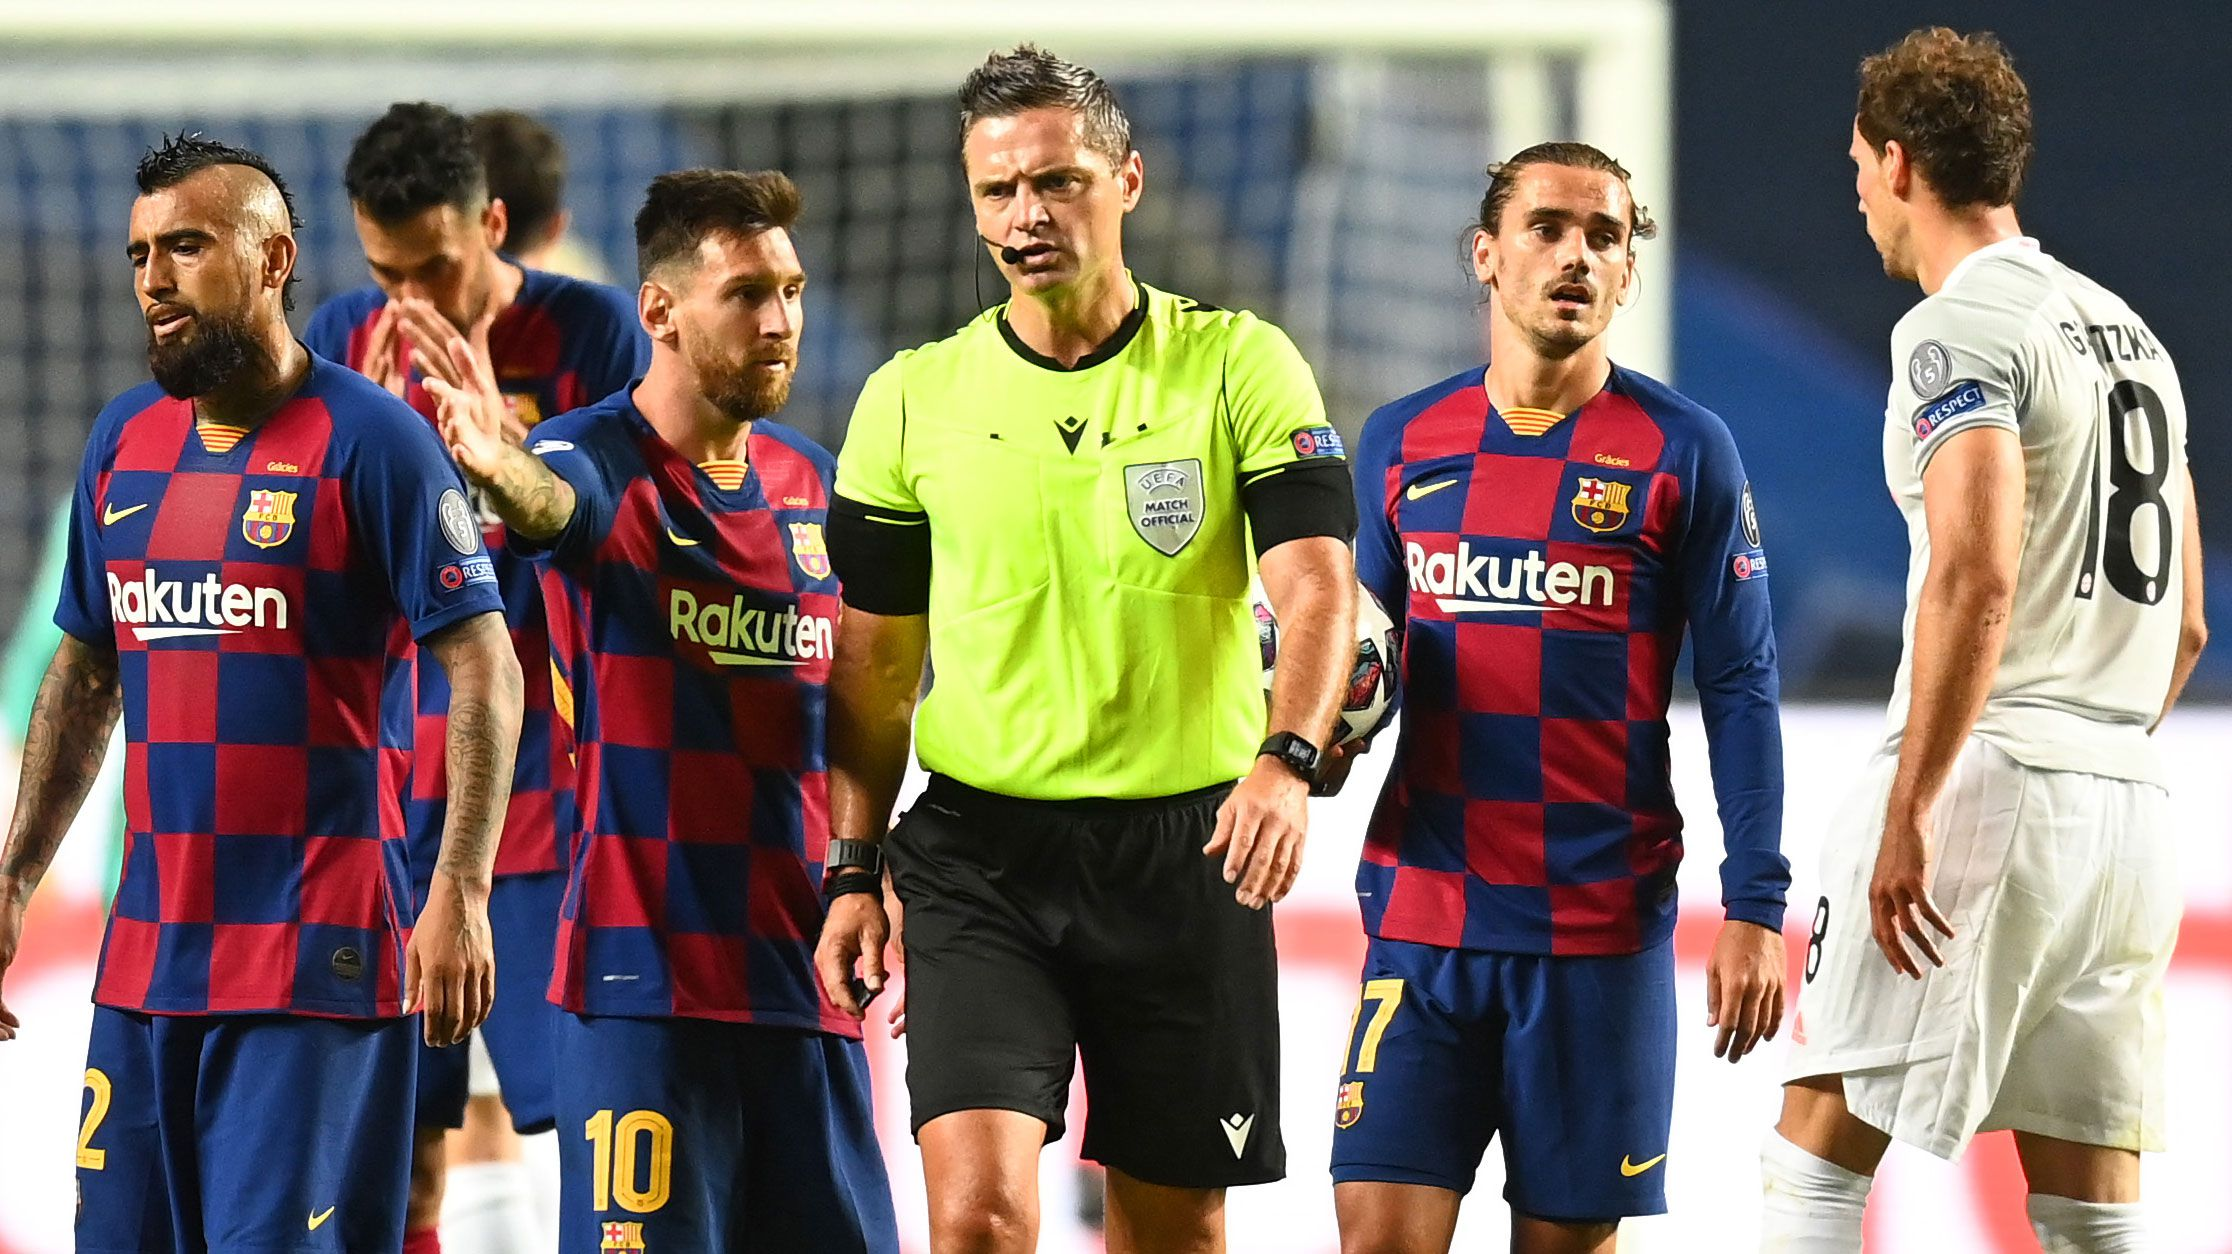 Lionel Messi of FC Barcelona confronts referee Damir Skomina during the UEFA Champions League Quarter Final match between Barcelona and Bayern Munich.